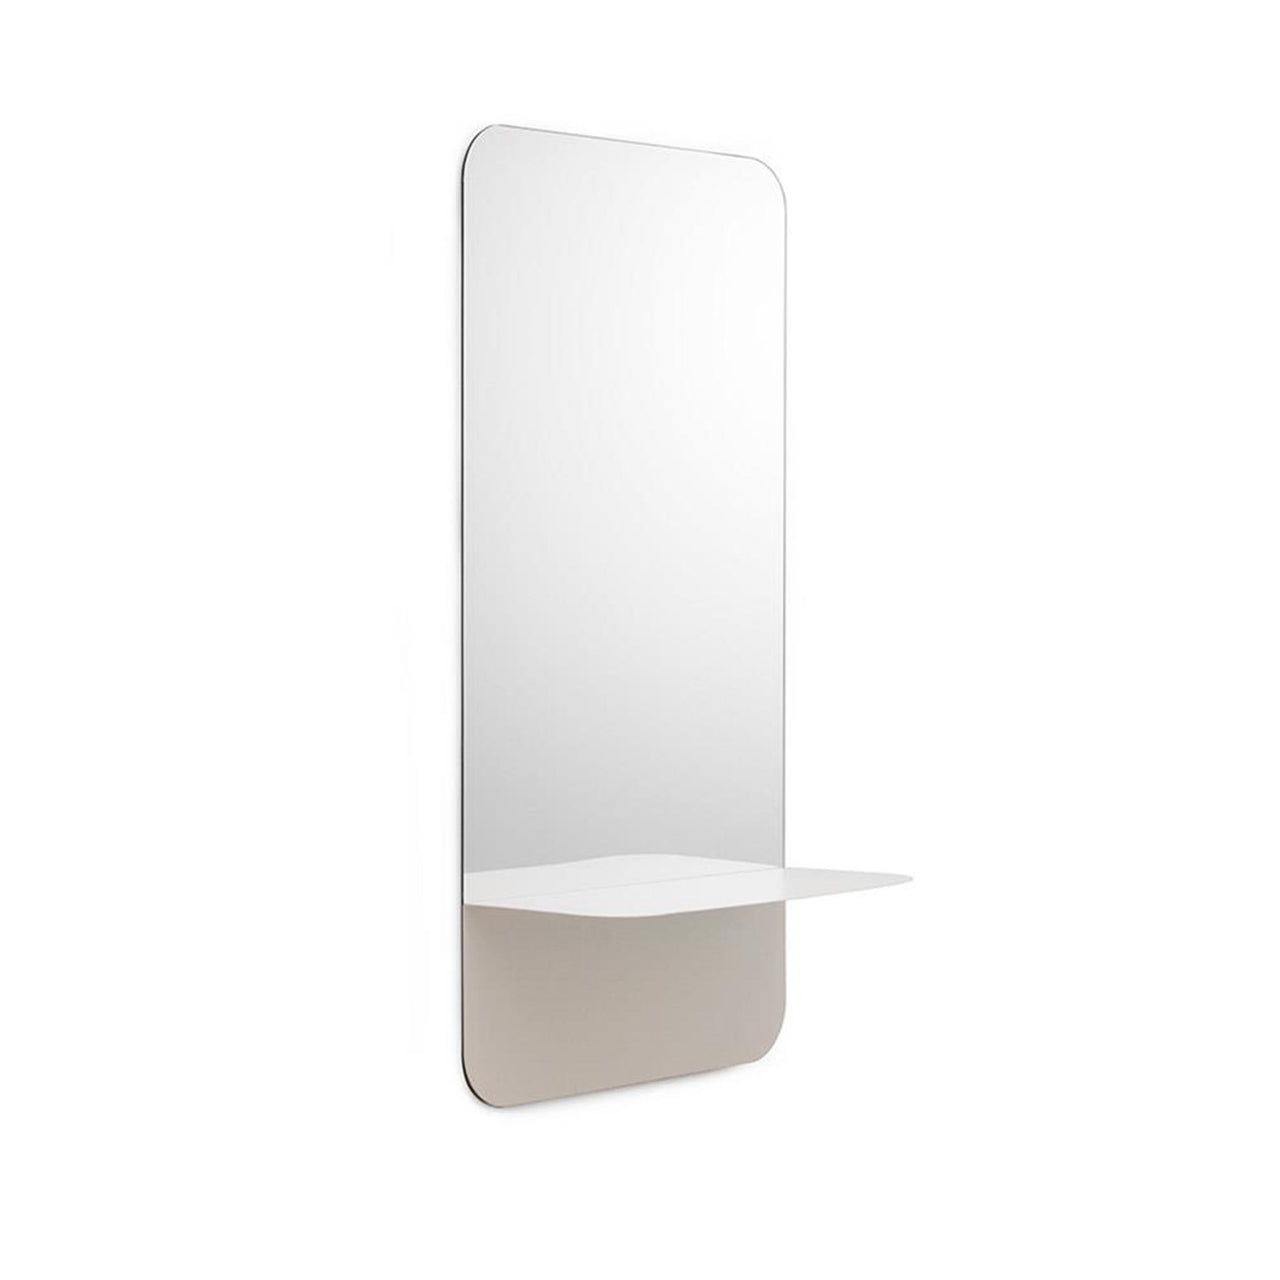 Horizon Mirror Vertical - White